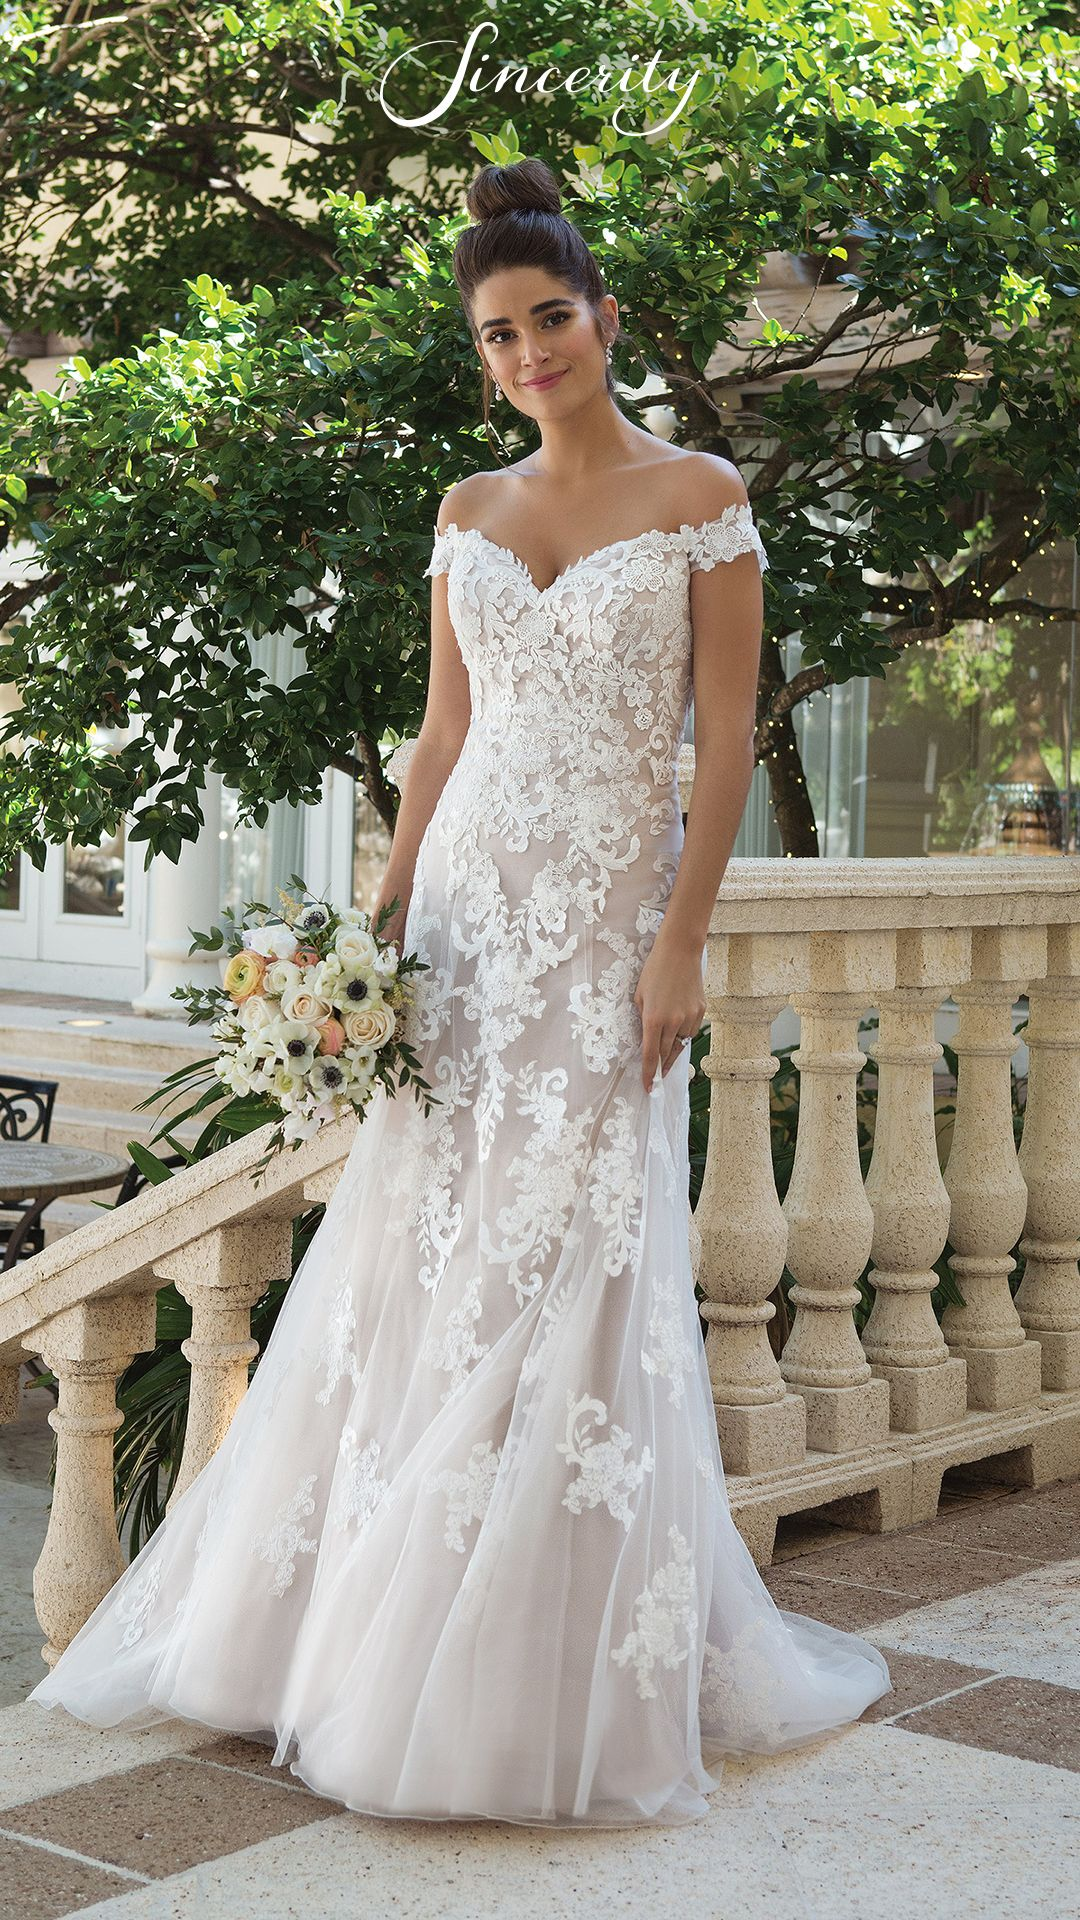 Embroidered lace wedding dress  Style  Off the Shoulder ALine Gown with Embroidered Lace